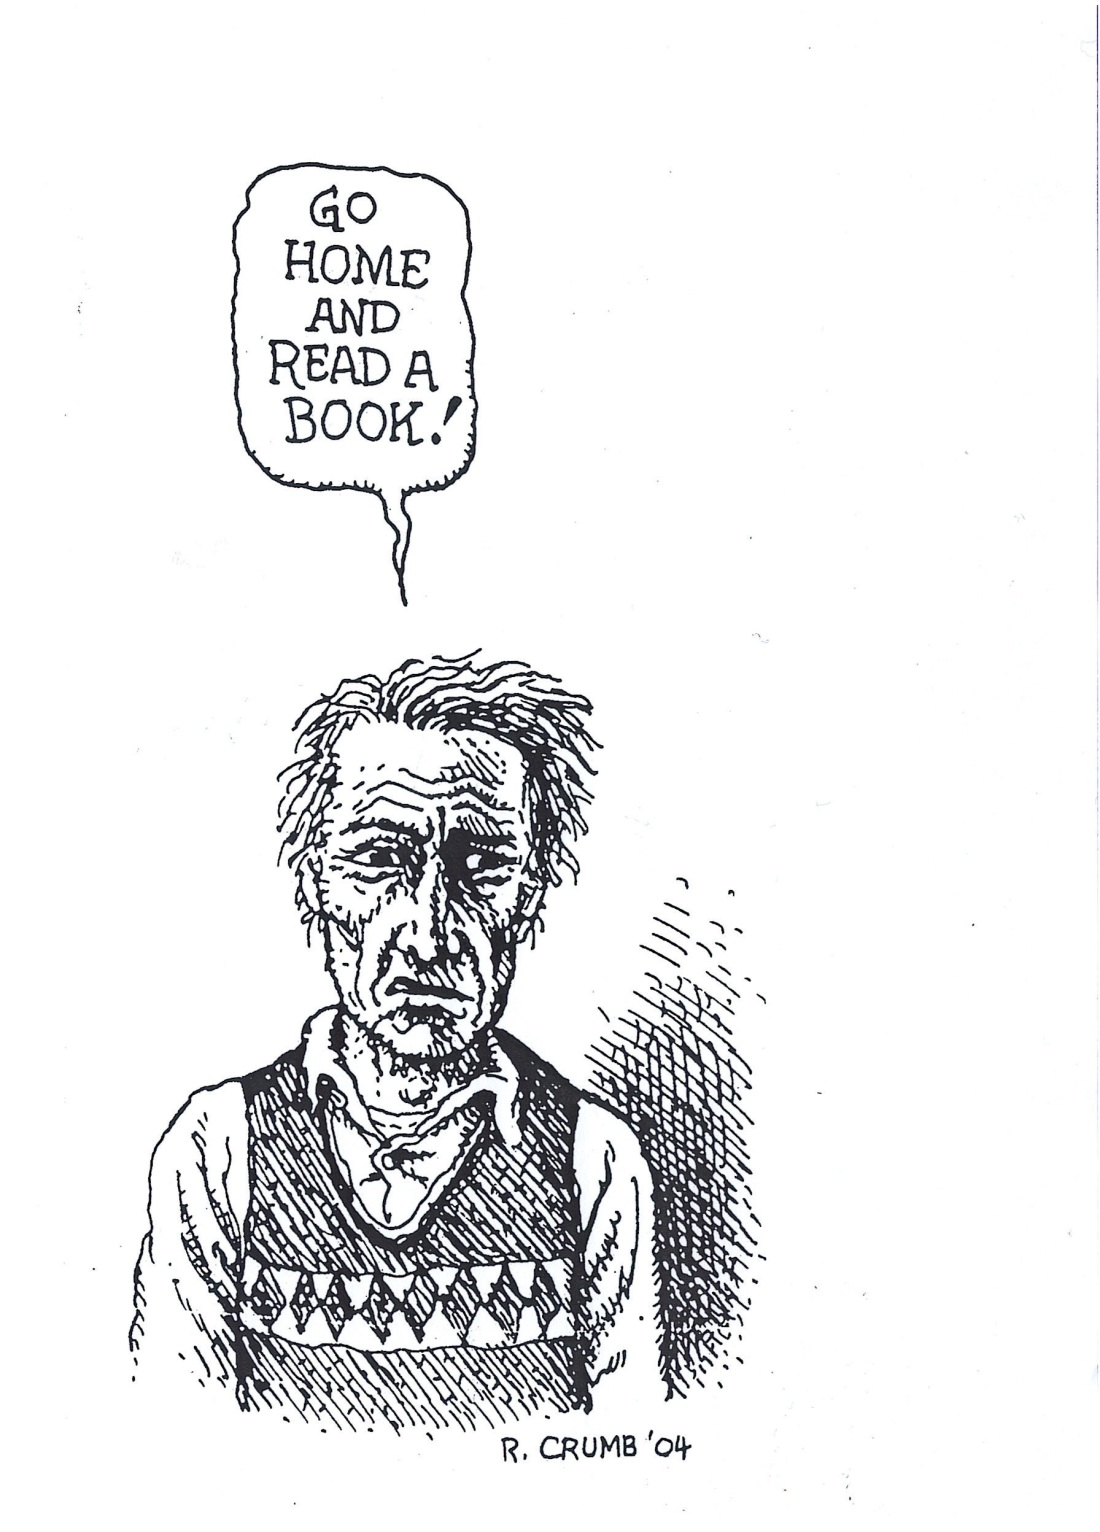 GO HOME AND READ A BOOK!